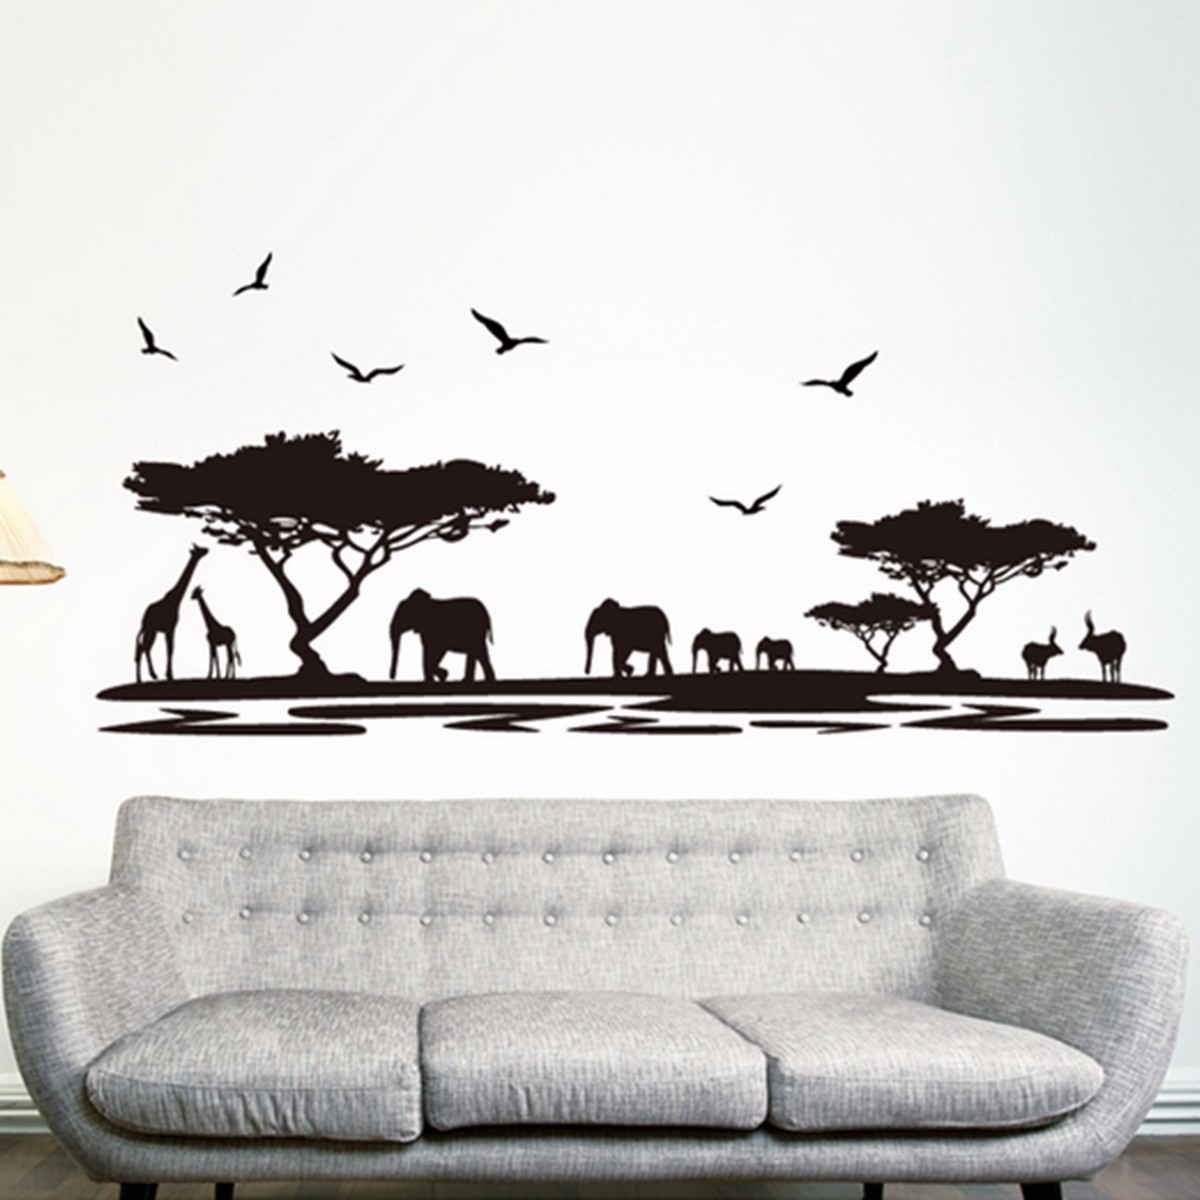 Best Promotion <font><b>African</b></font> Animals Elephant Themed Wall Sticker Mural <font><b>Home</b></font> Decal <font><b>Decor</b></font> Removable Room Decoration